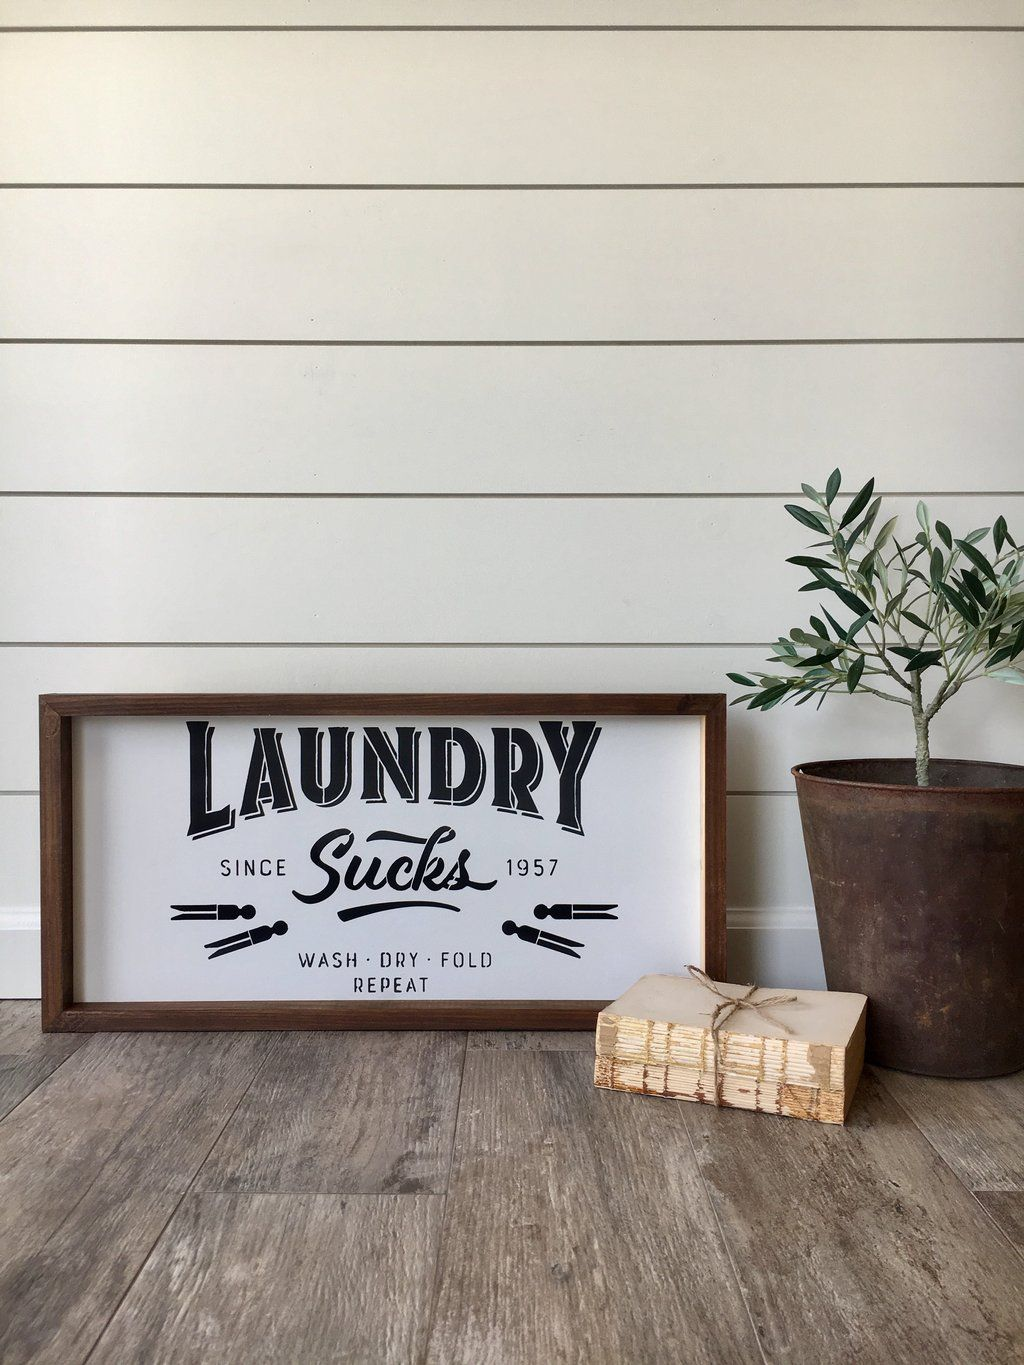 Laundry Room Wooden Signs Laundry Sucks Wooden Sign  House Of Boys & Beauty  Pantry